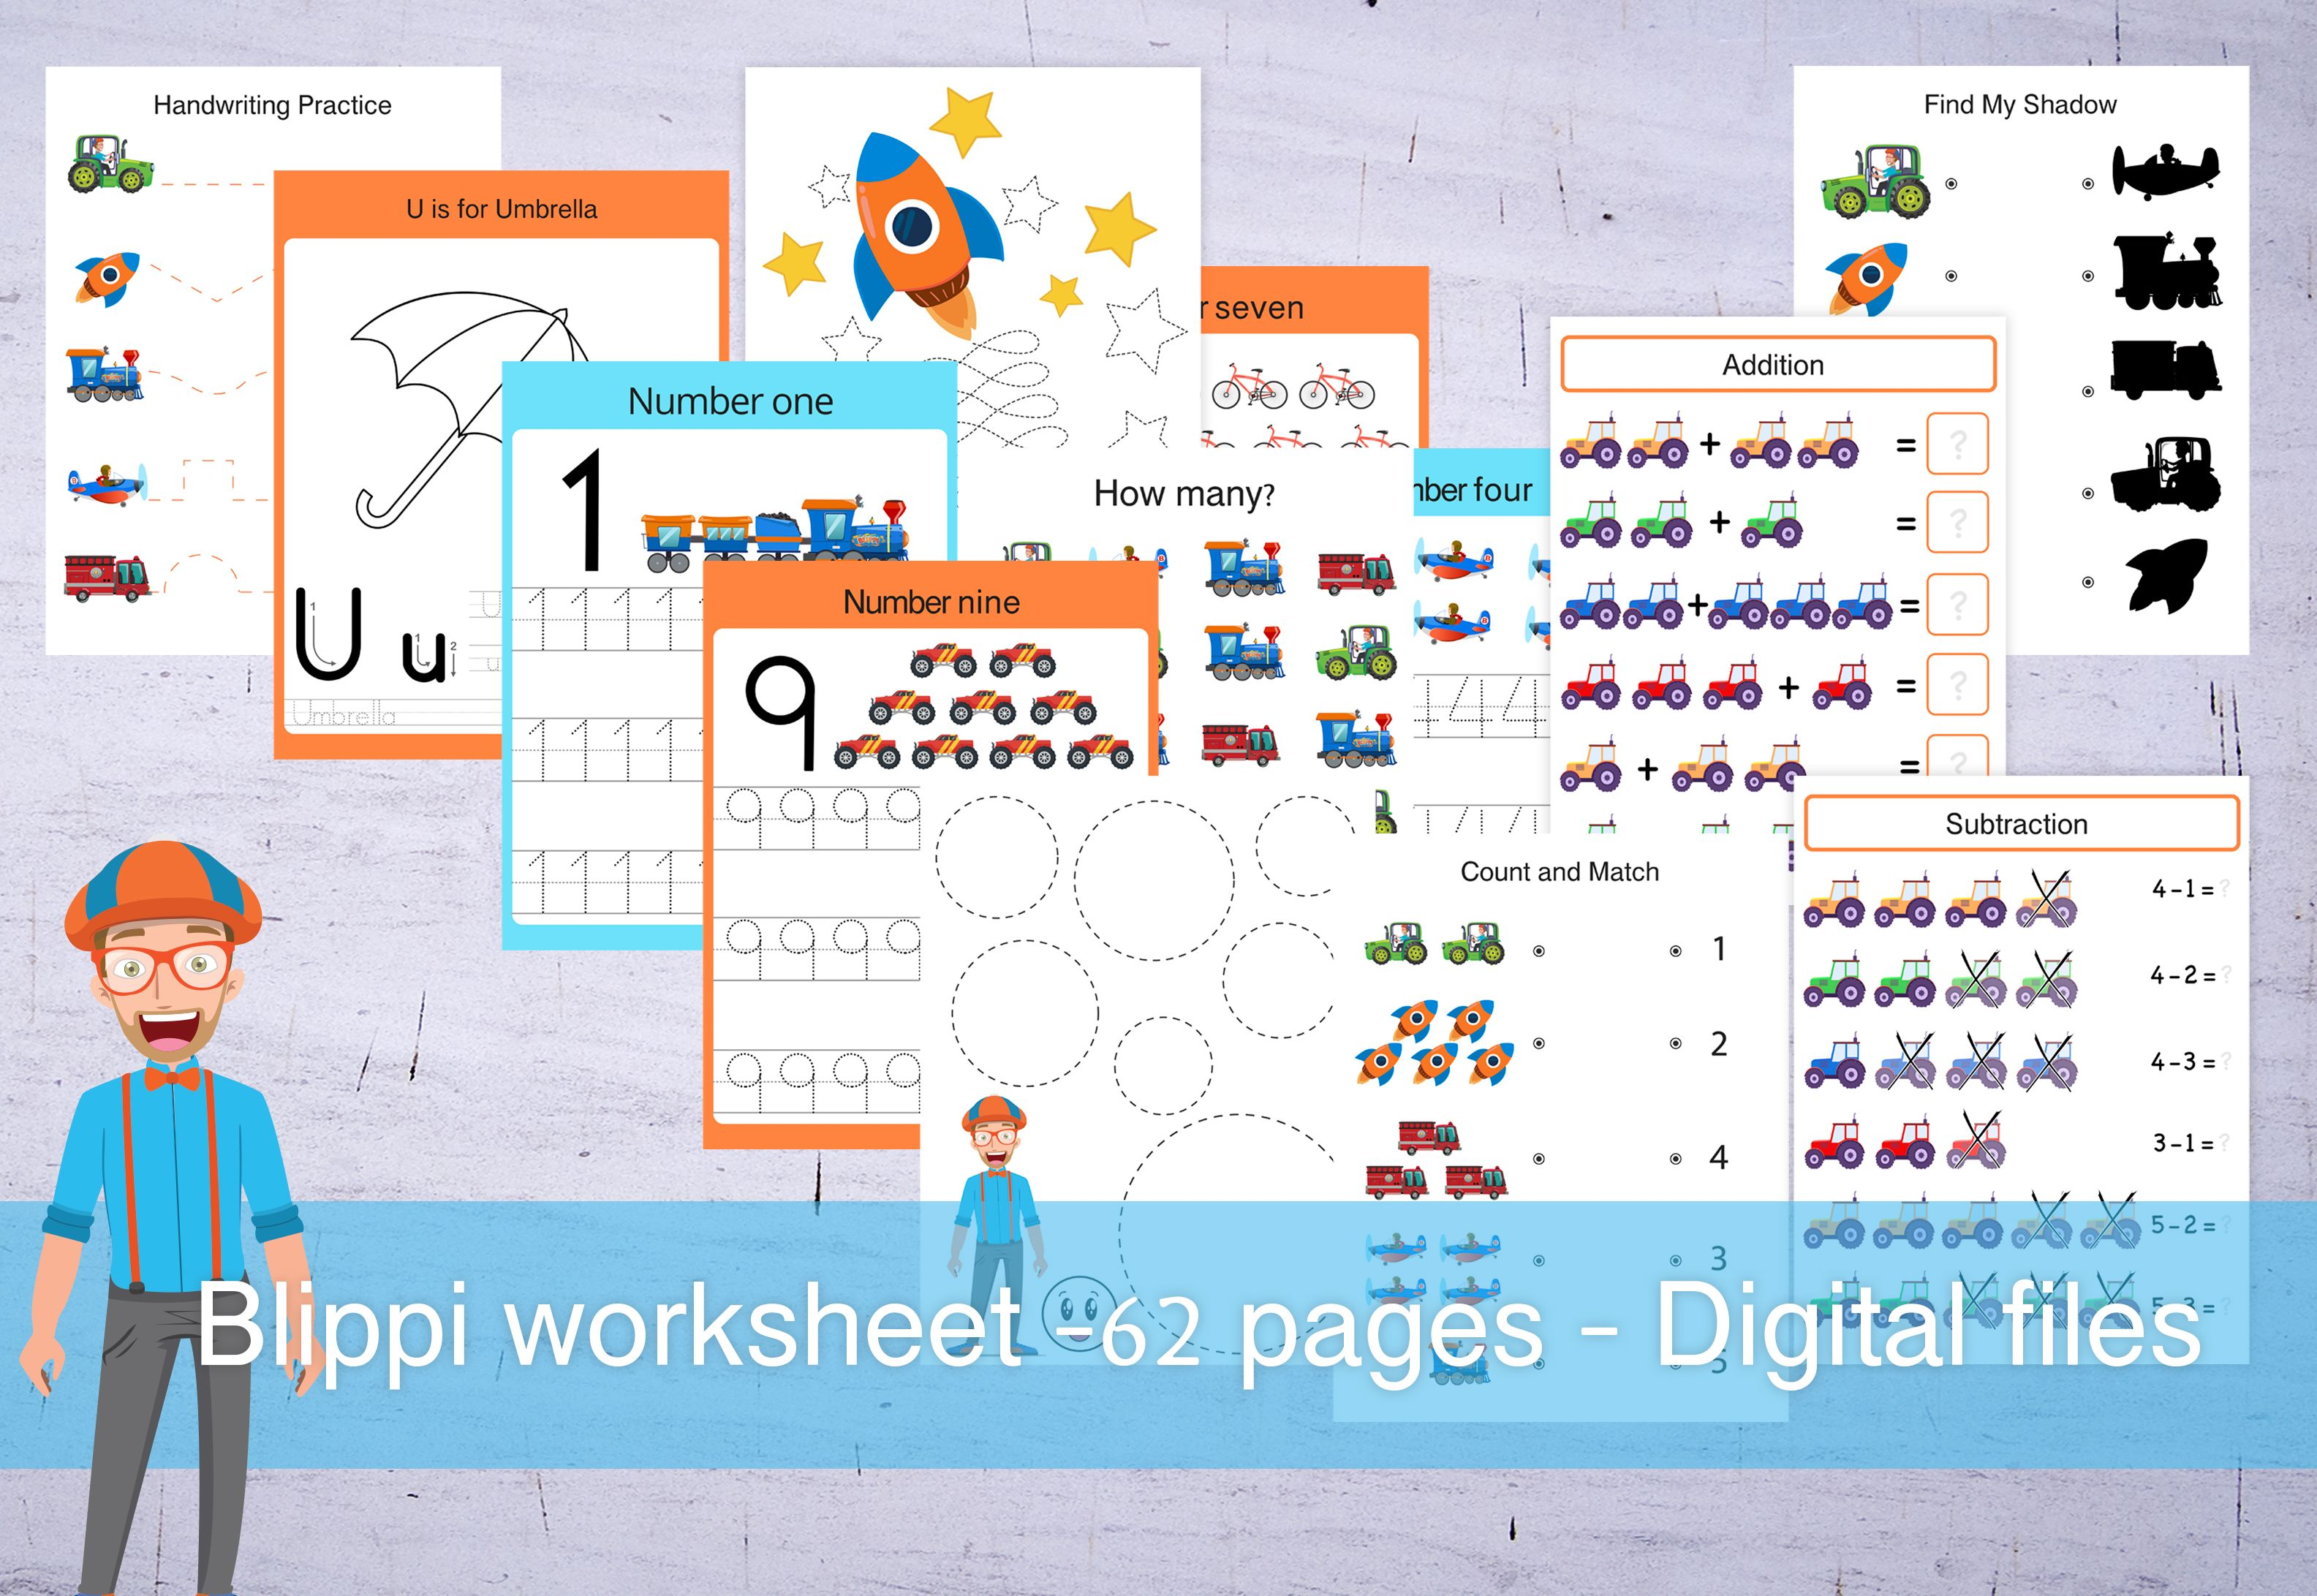 62 Blippi Printables Handrawing Practice Shapes Addition And Subtraction Math Sheets Letter Tracing Number Tracing Colouring Pages In 2020 Colouring Pages Math Sheets Educational Worksheets